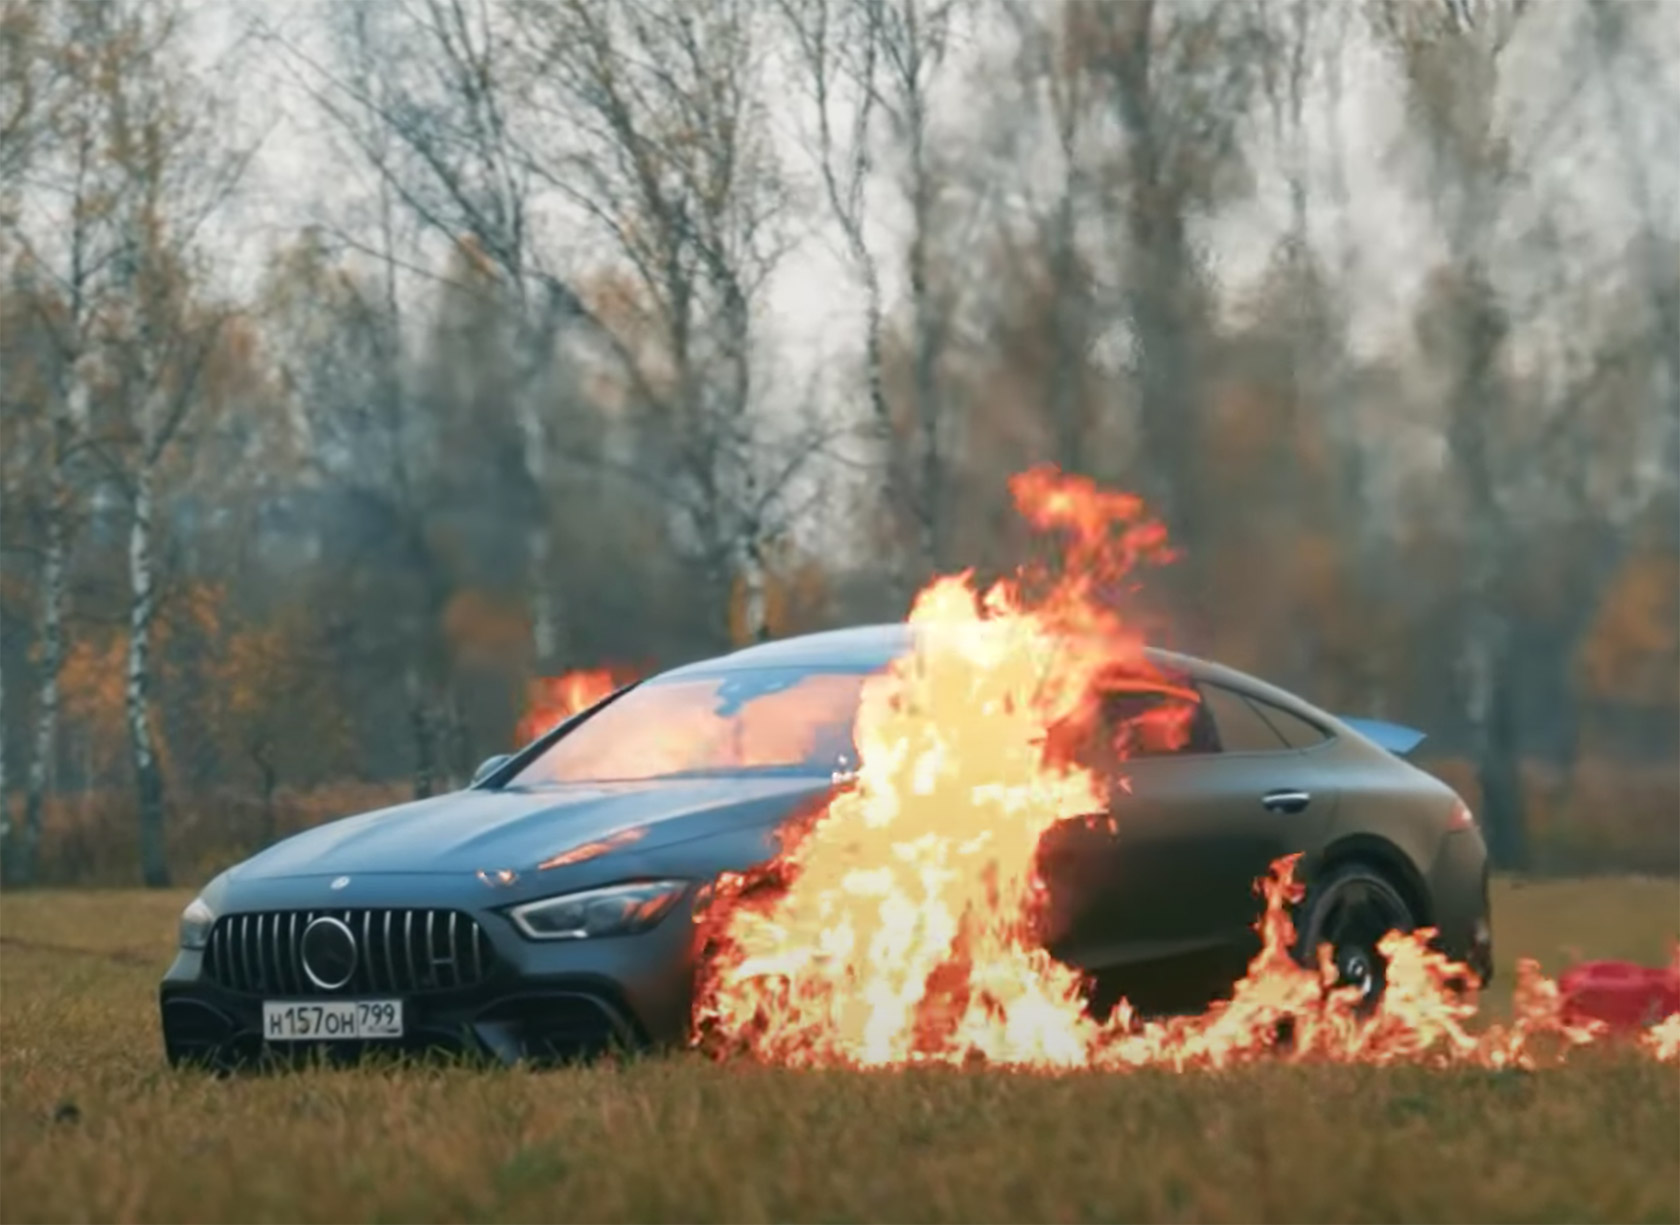 Mercedes-AMG GT 63 S Burned